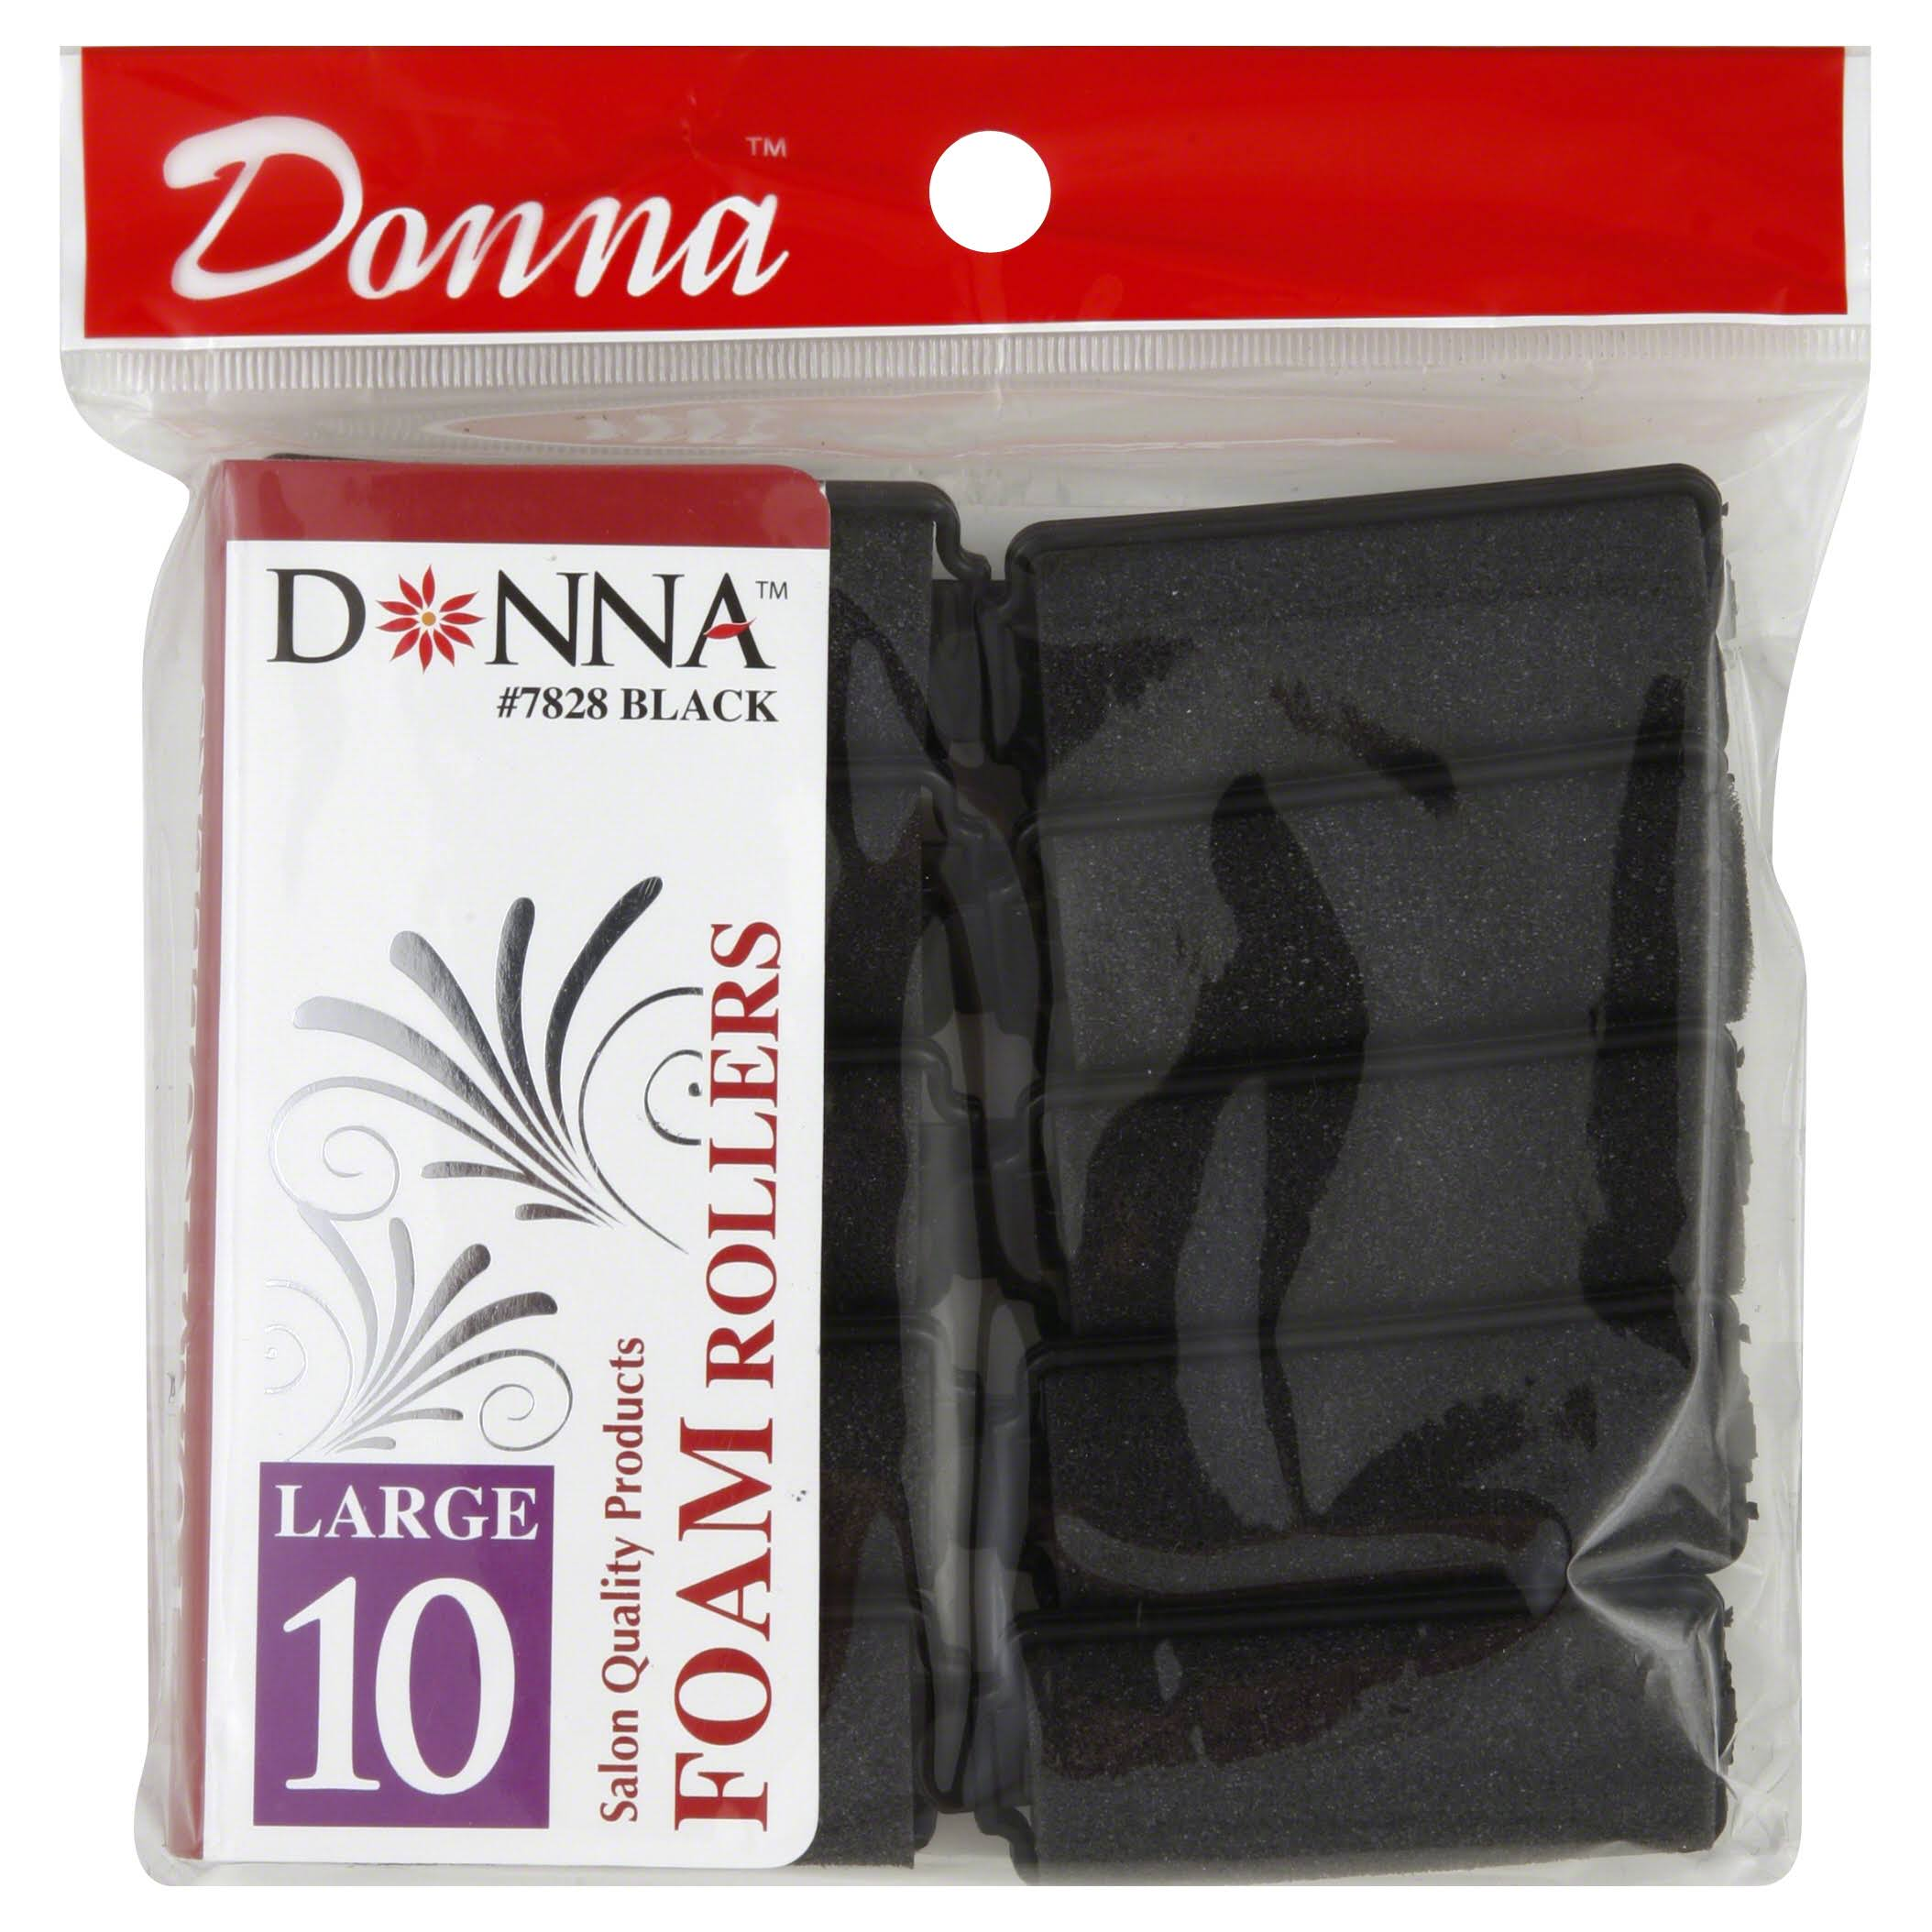 Donna Foam Rollers, Large, Black - 10 rollers